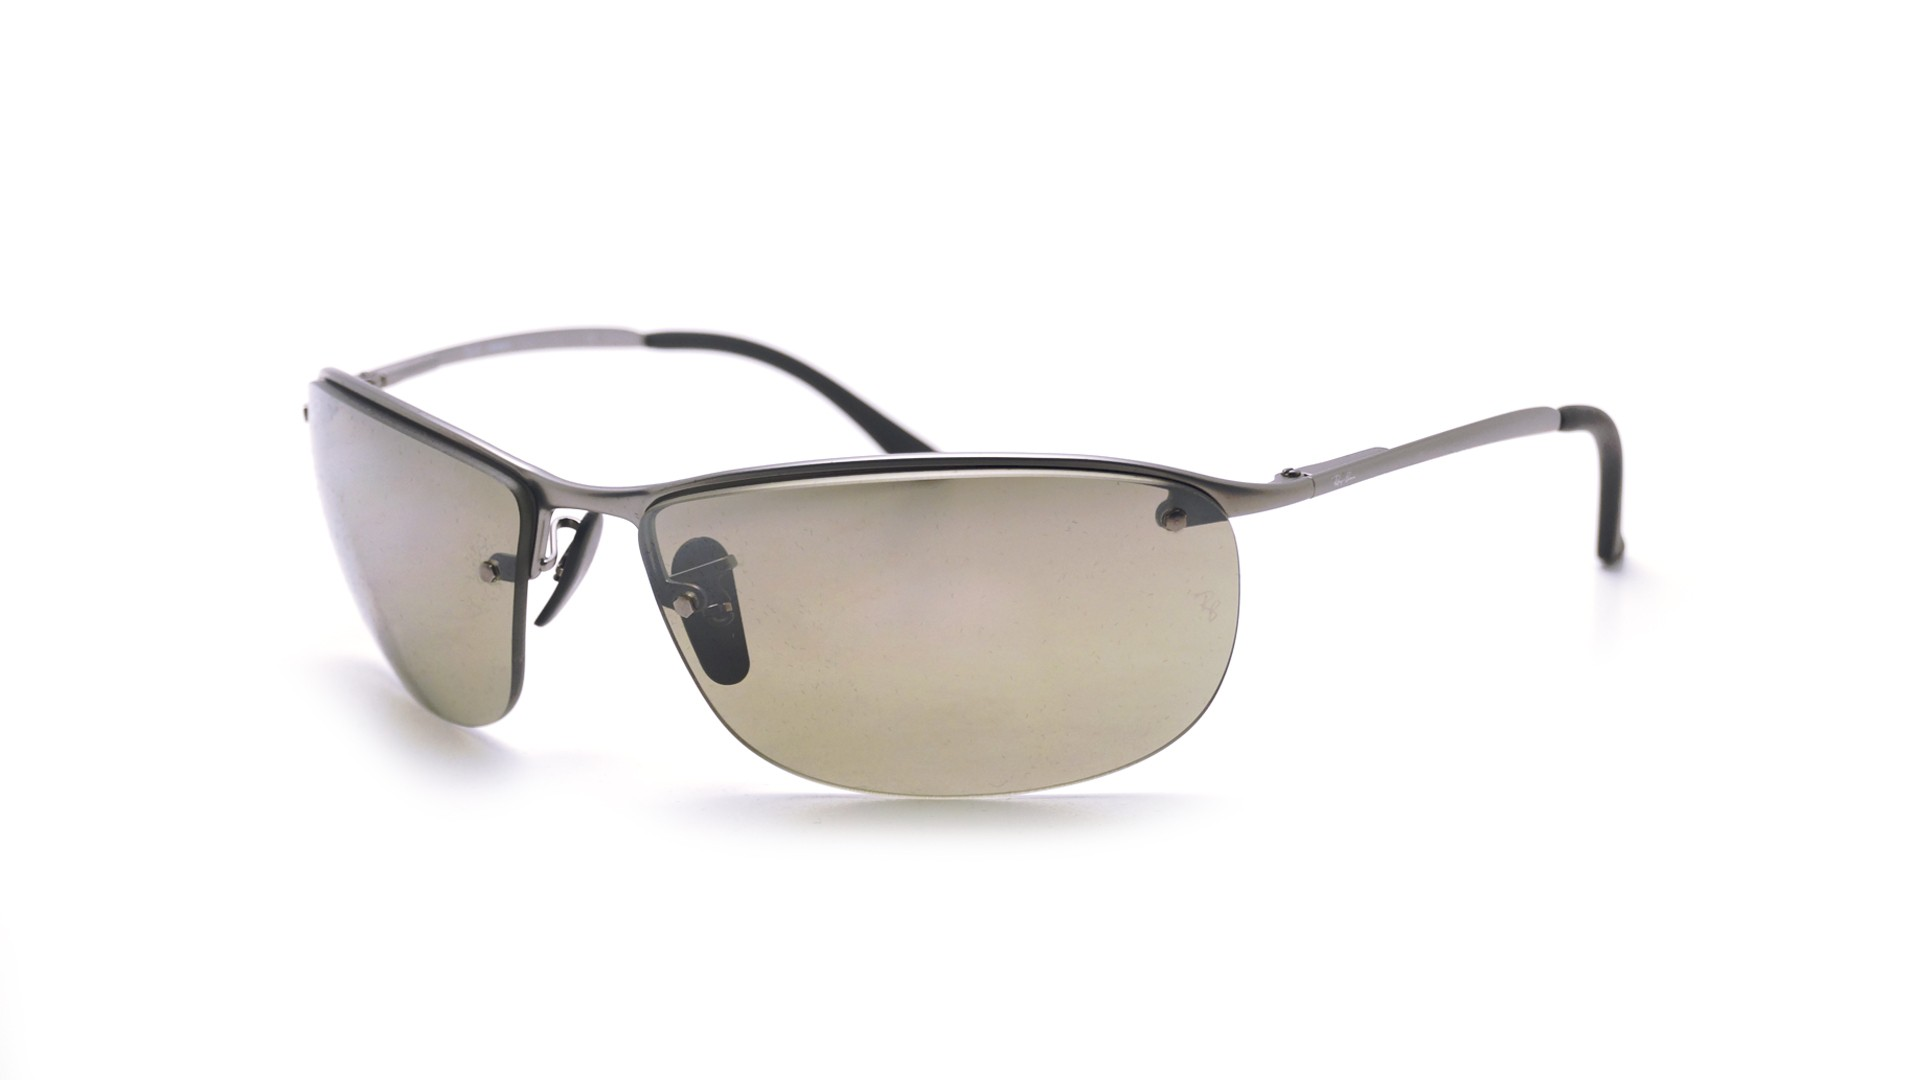 c20e2d7fbb Sunglasses Ray-Ban RB3542 029 5J 63-15 Silver Matte Large Polarized Mirror